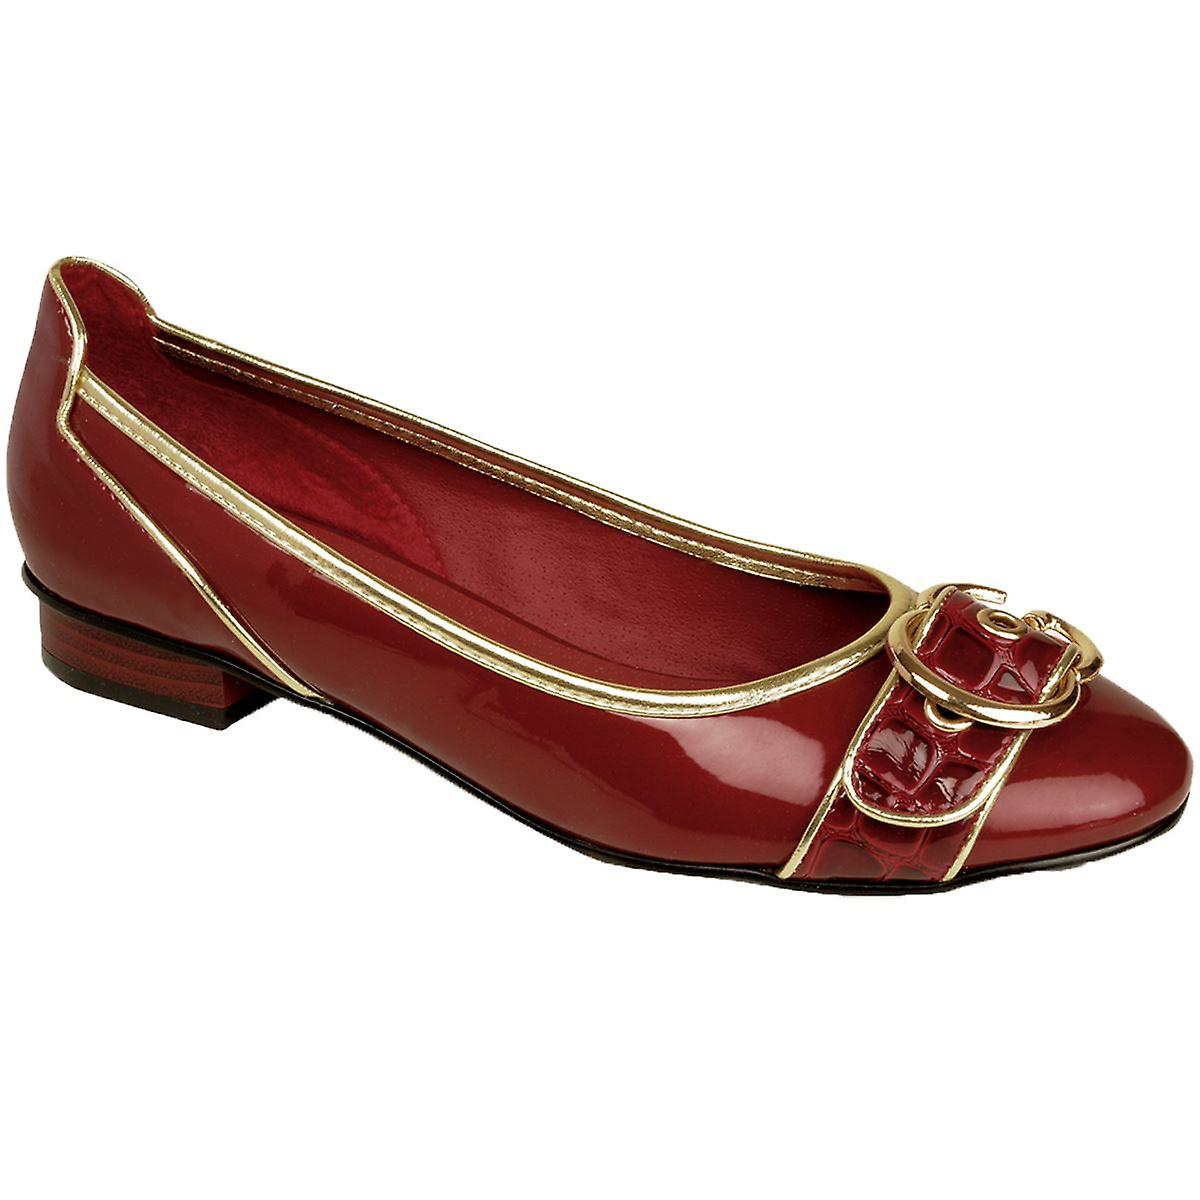 Ladies Patent Shiny Buckle Front Low Heel Silver Gold Trim Women's Flats Shoes